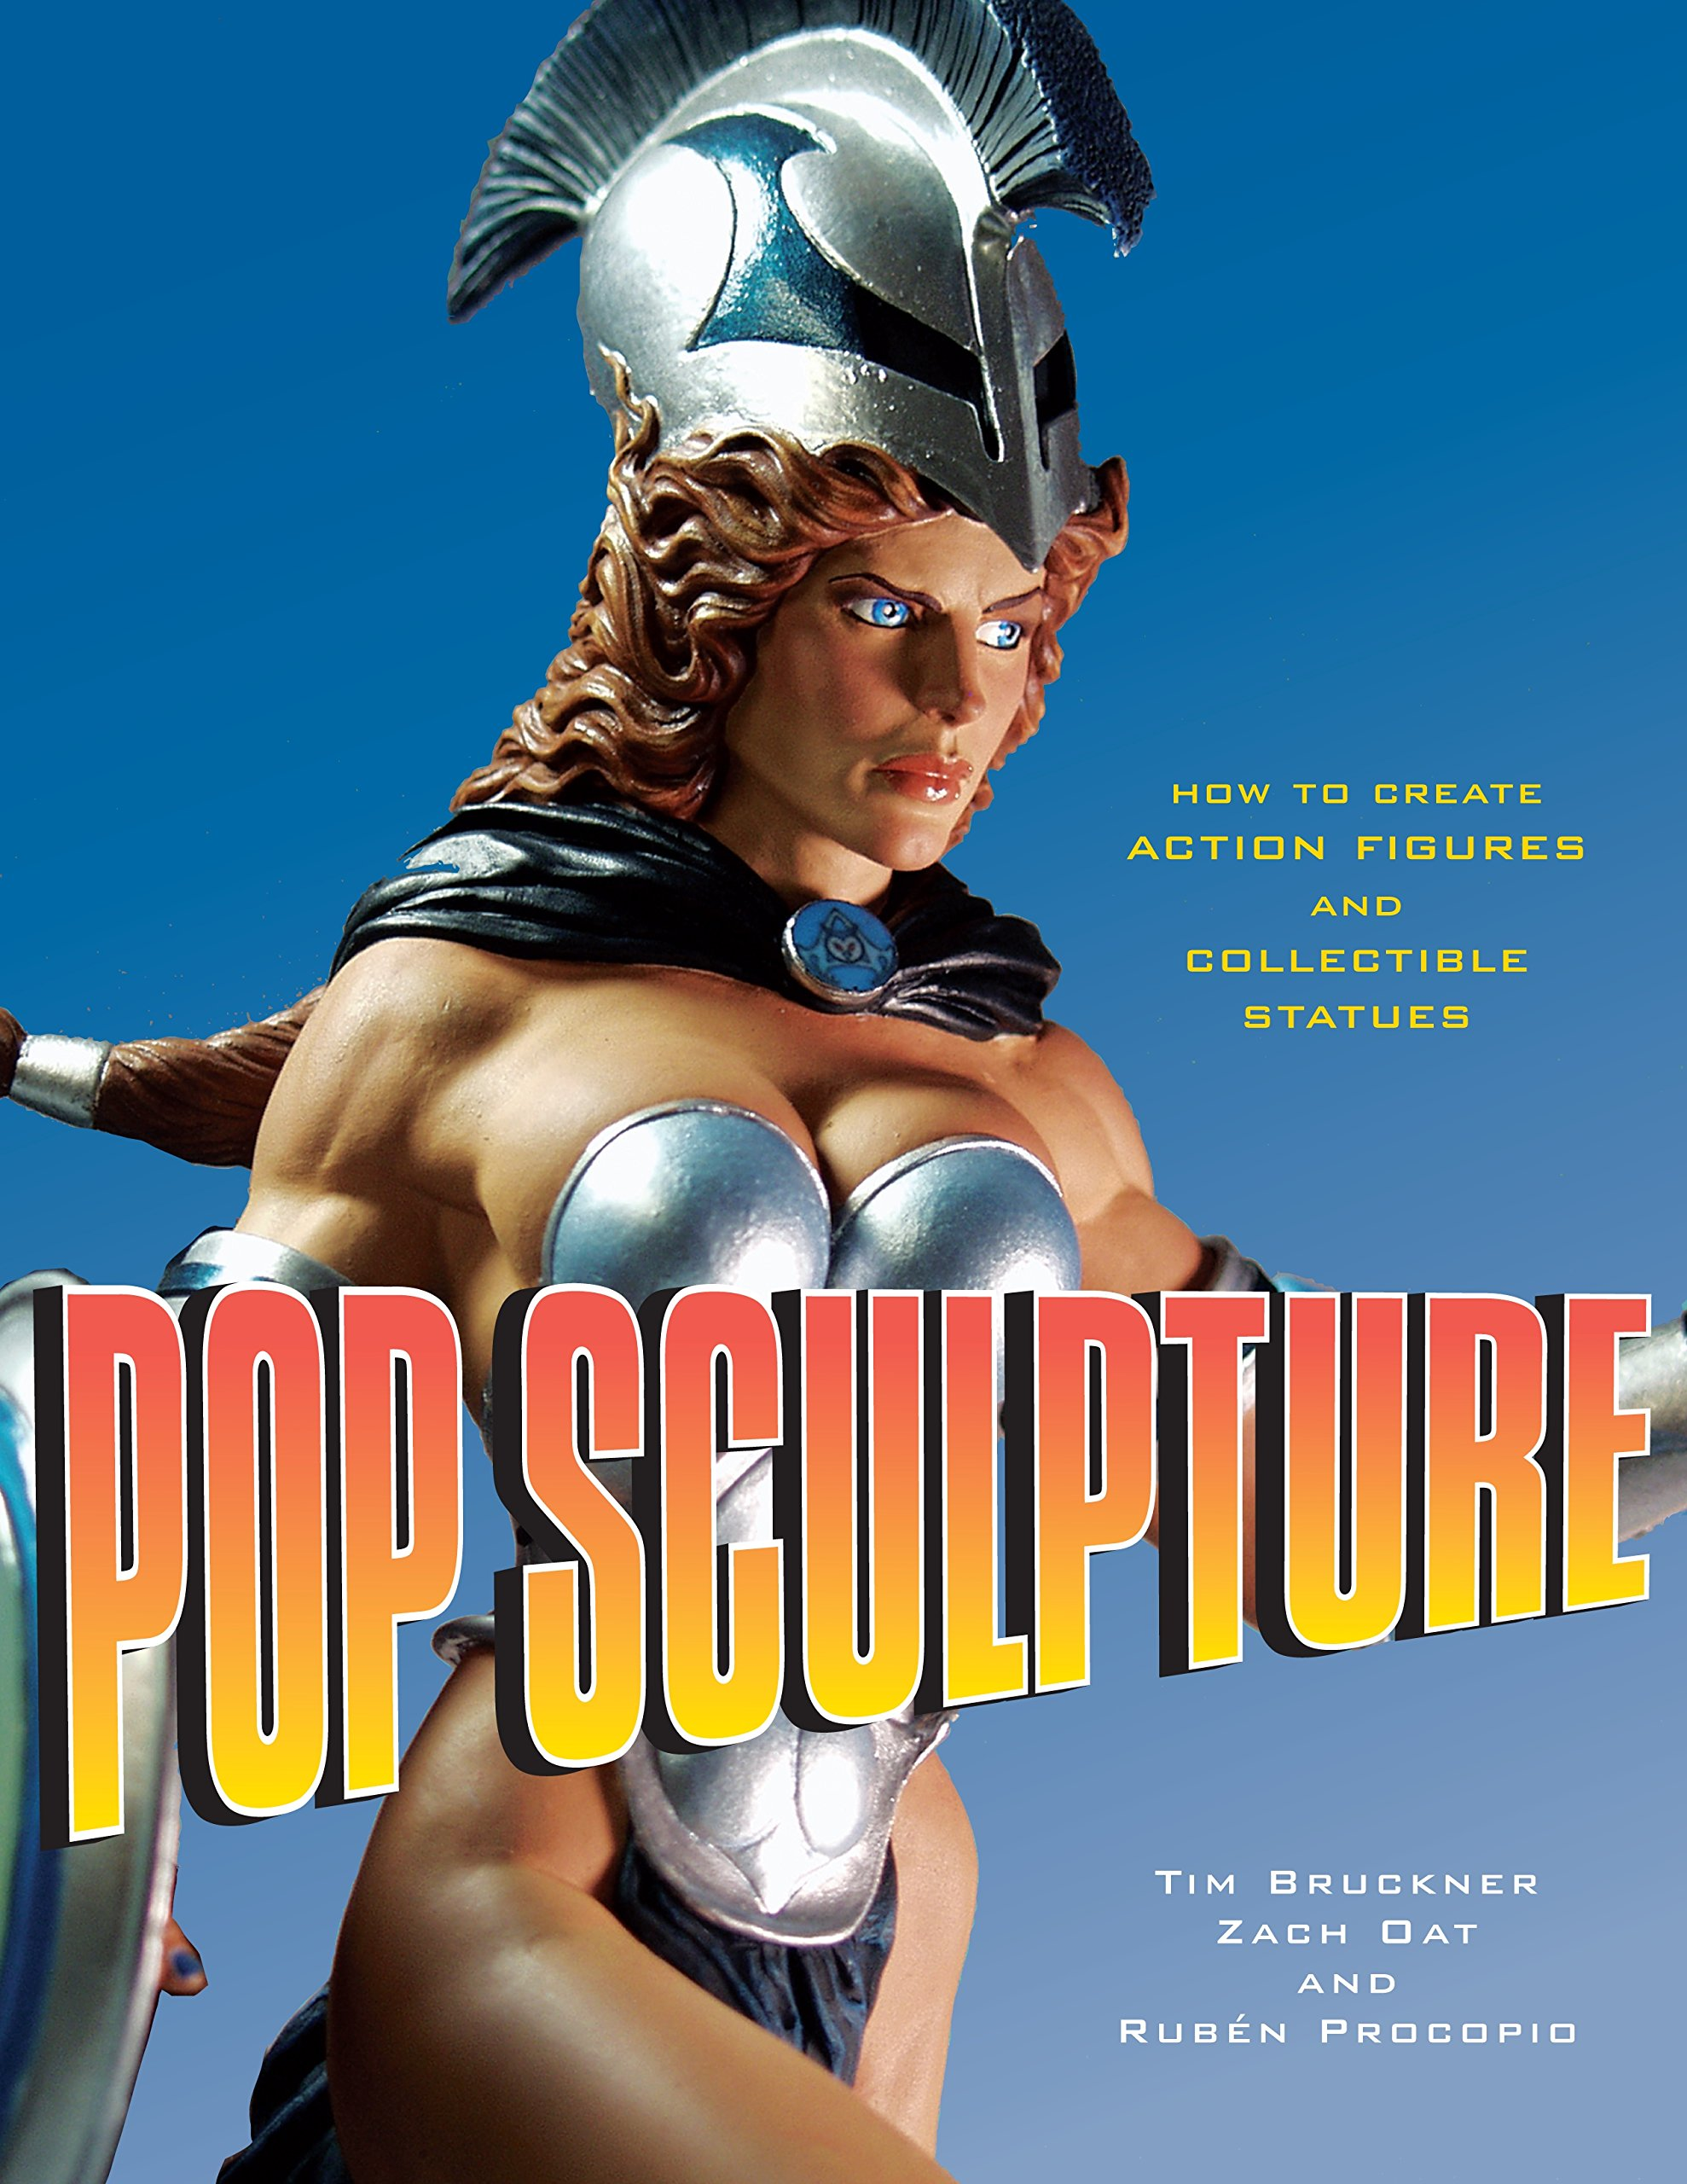 pop-sculpture-how-to-create-action-figures-and-collectible-statues